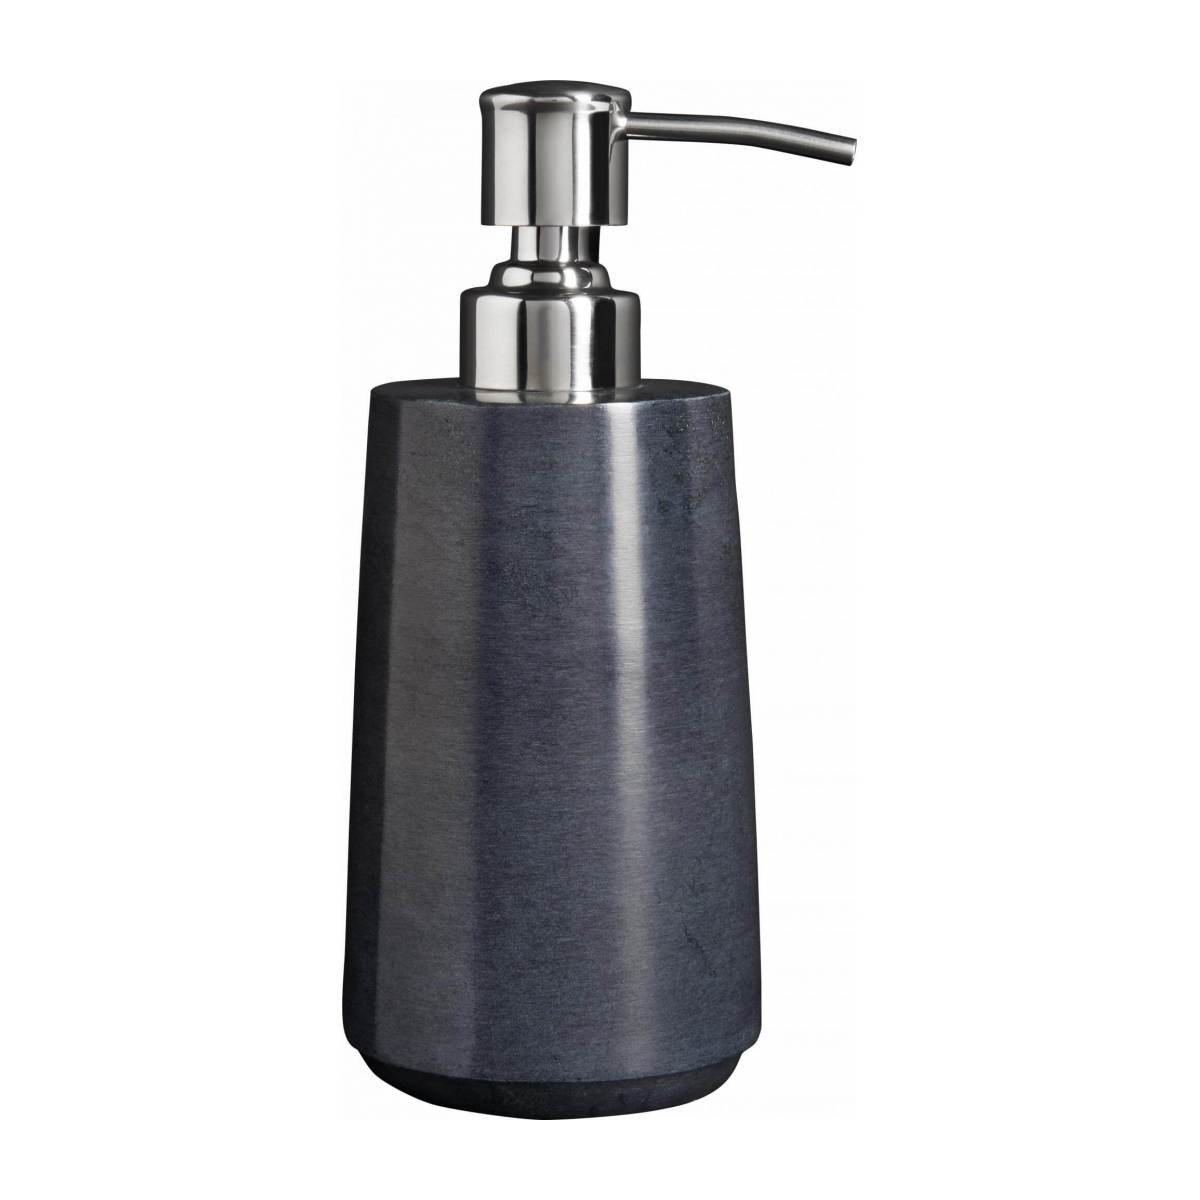 Grey soapstone soap dispenser n°3